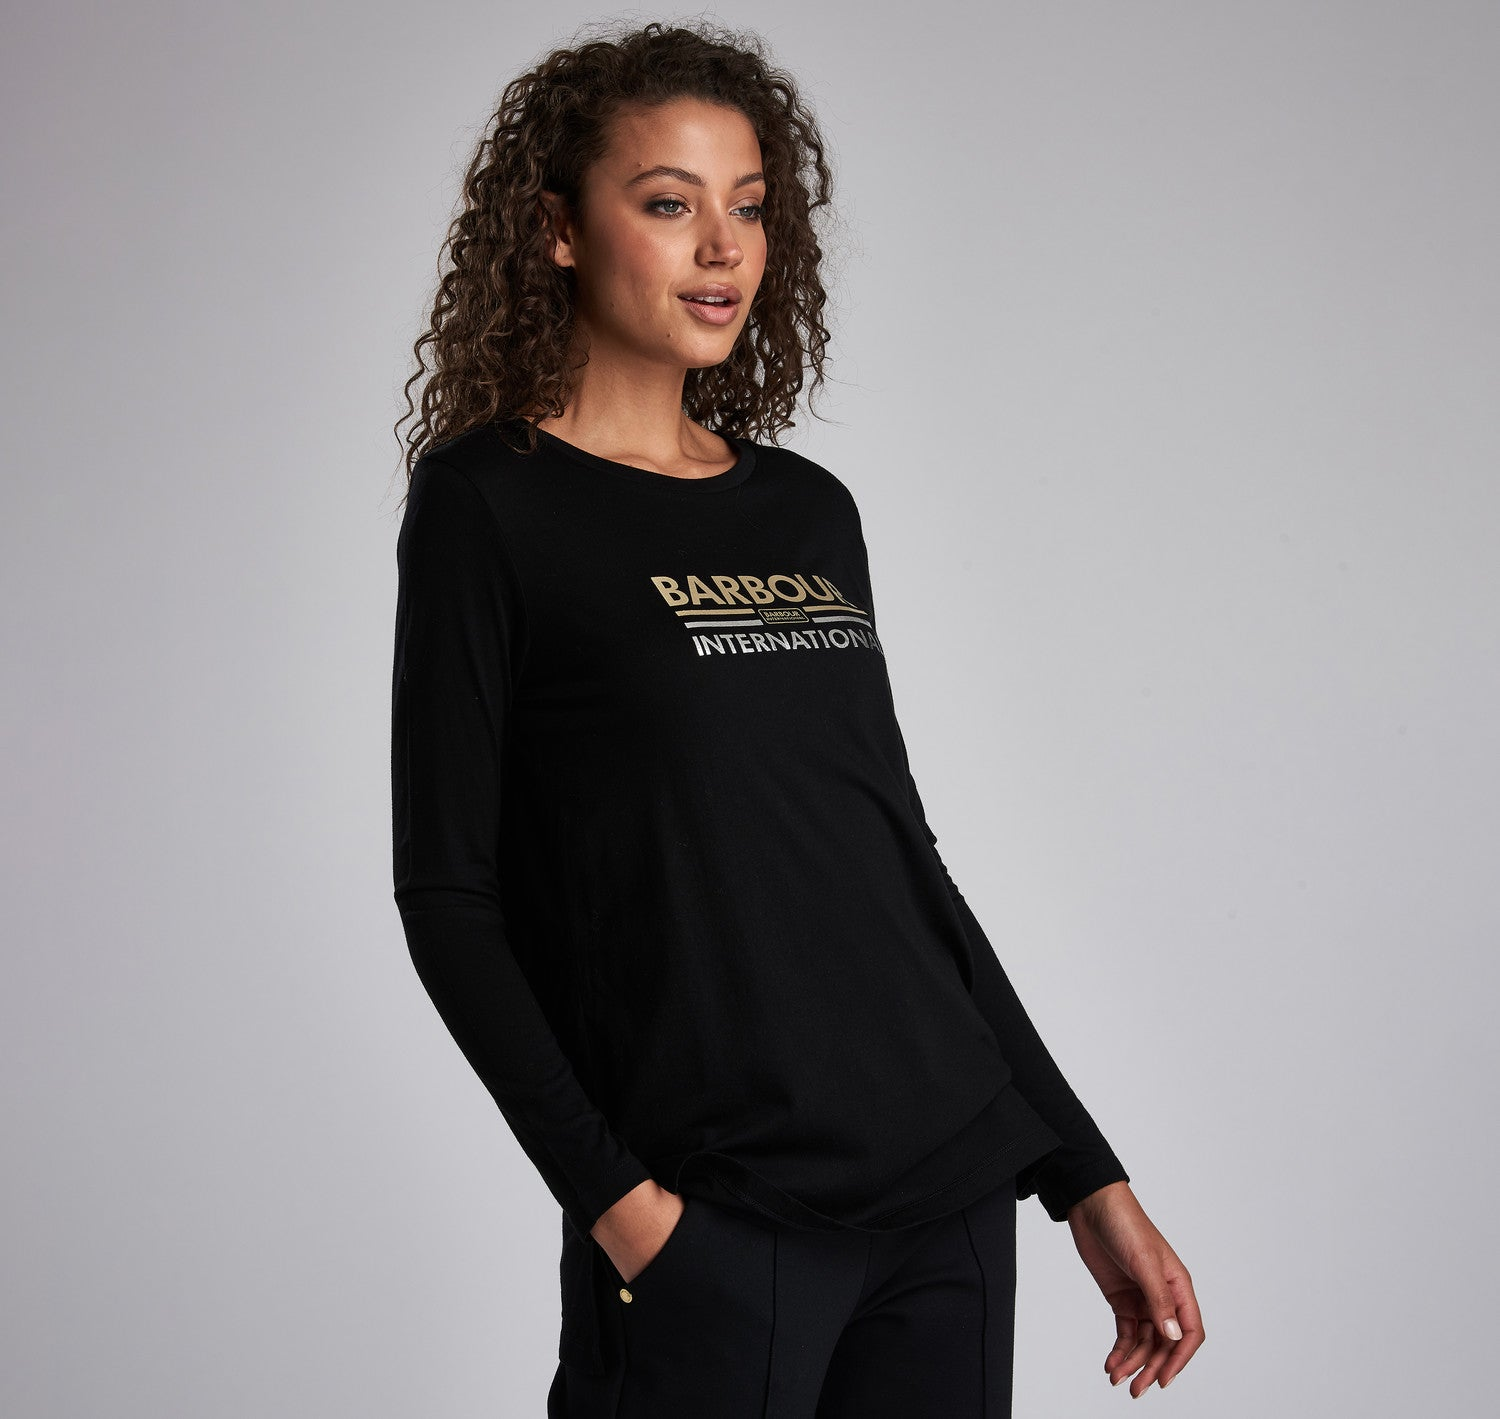 Barbour International Ronda Tee for Ladies in Black